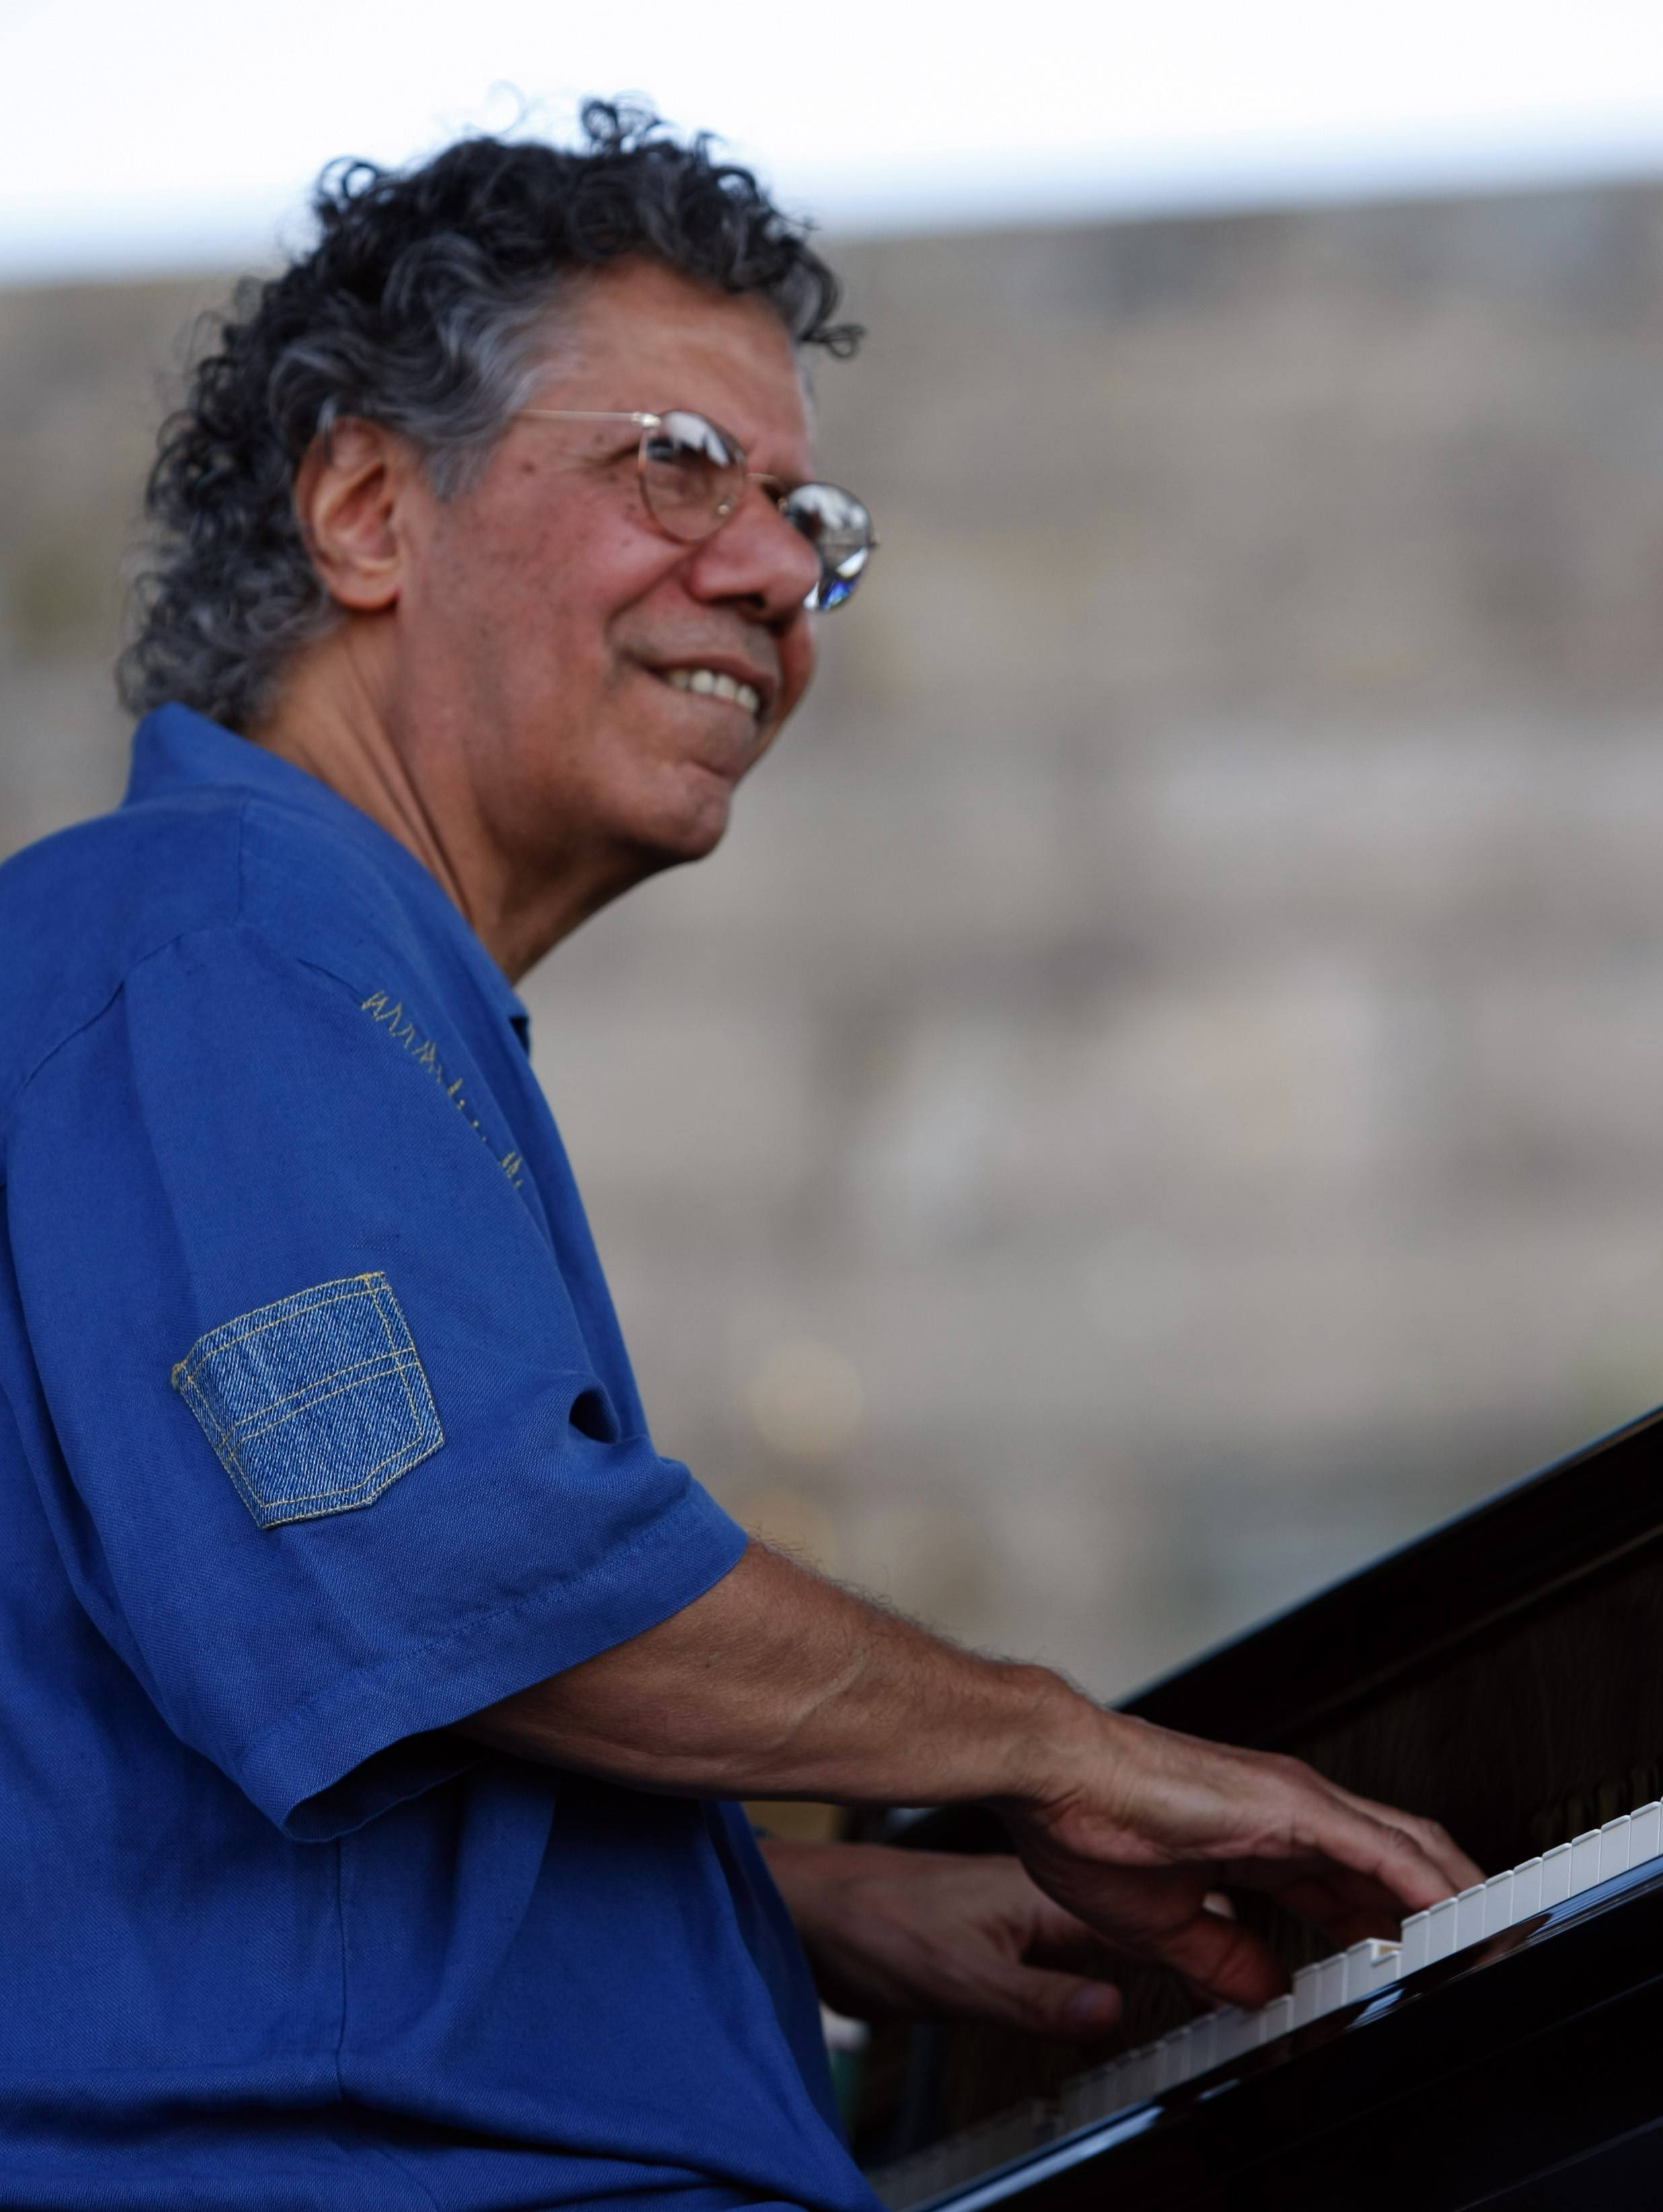 Jazz pianist Chick Corea will perform at the Genesee Theatre in Waukegan on Friday, March 30.